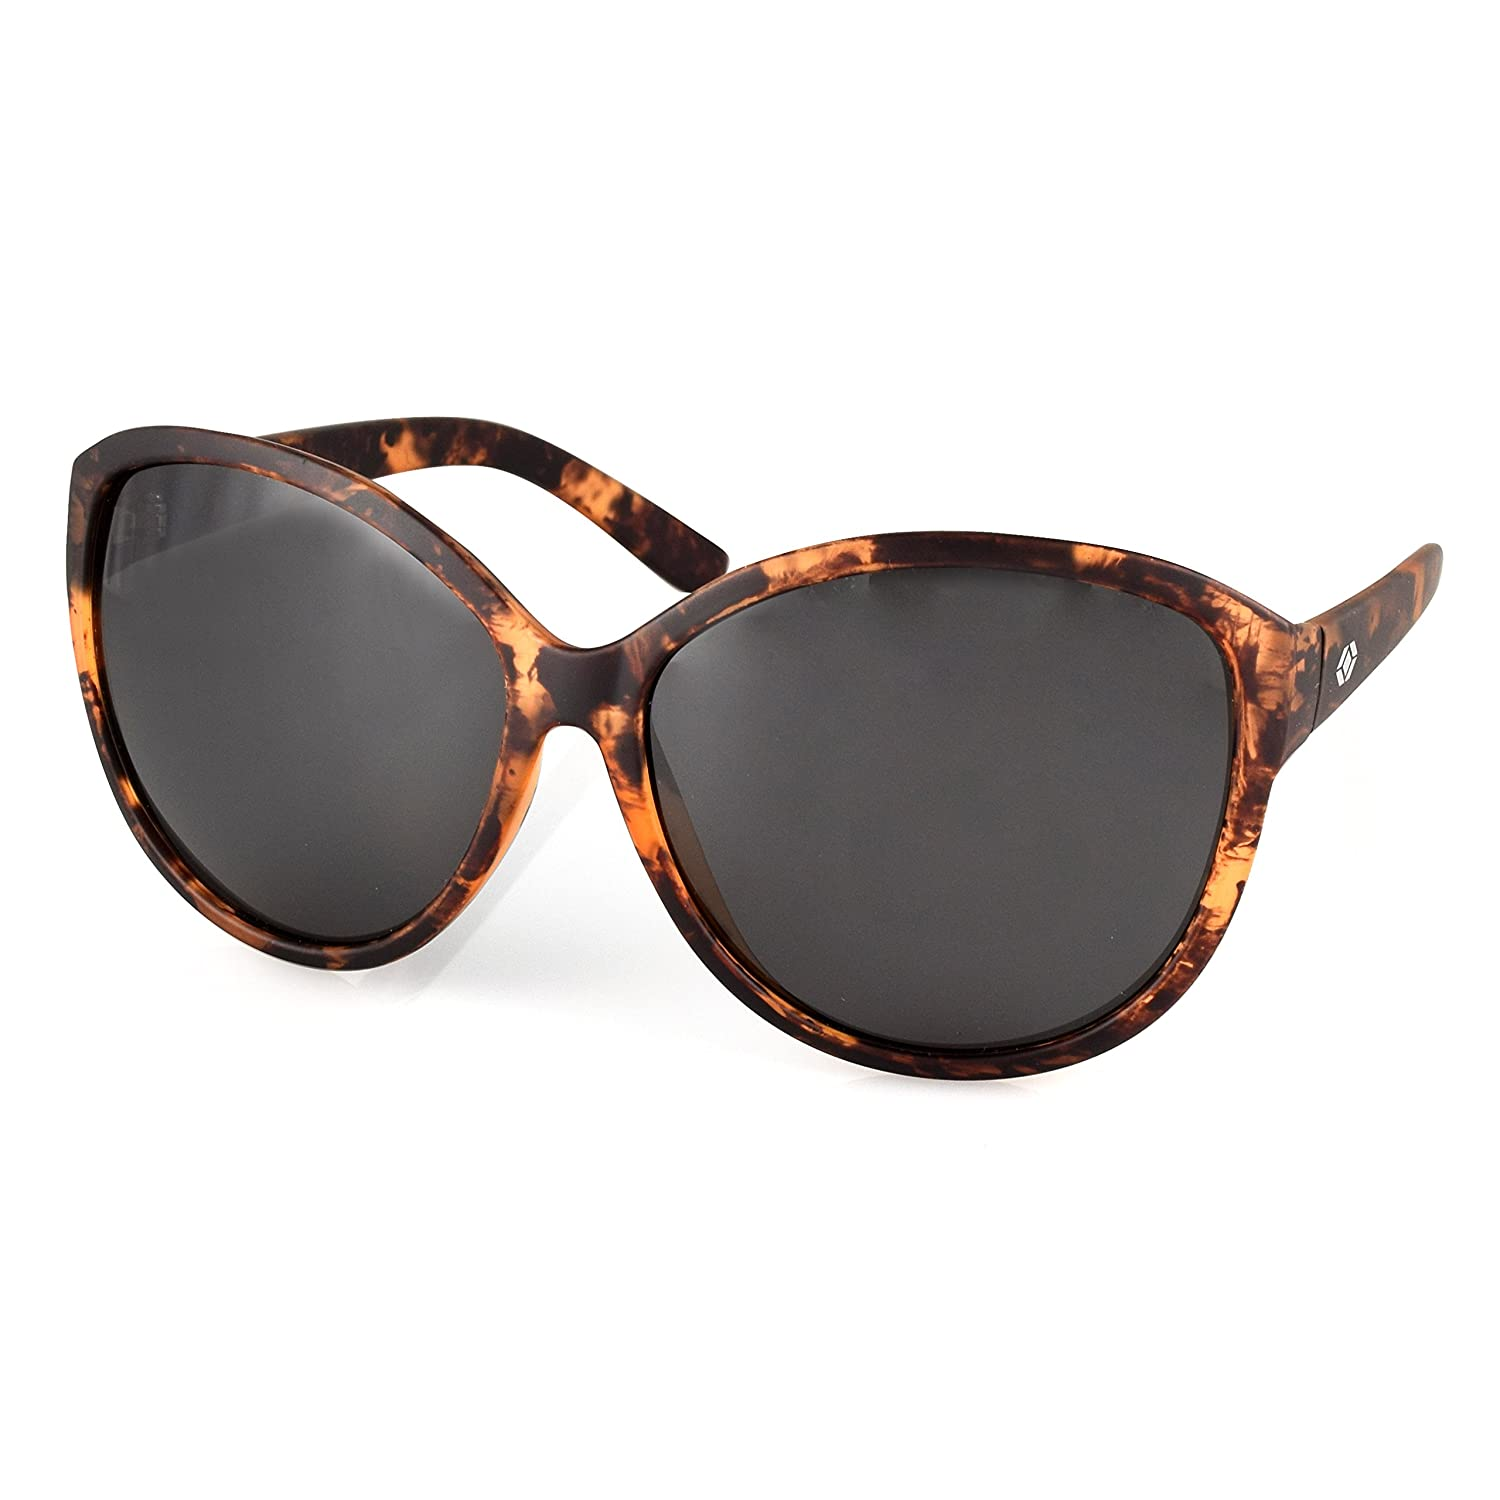 Polarized Oversized Womens Sunglasses by 13Fifty - 3 Color Options